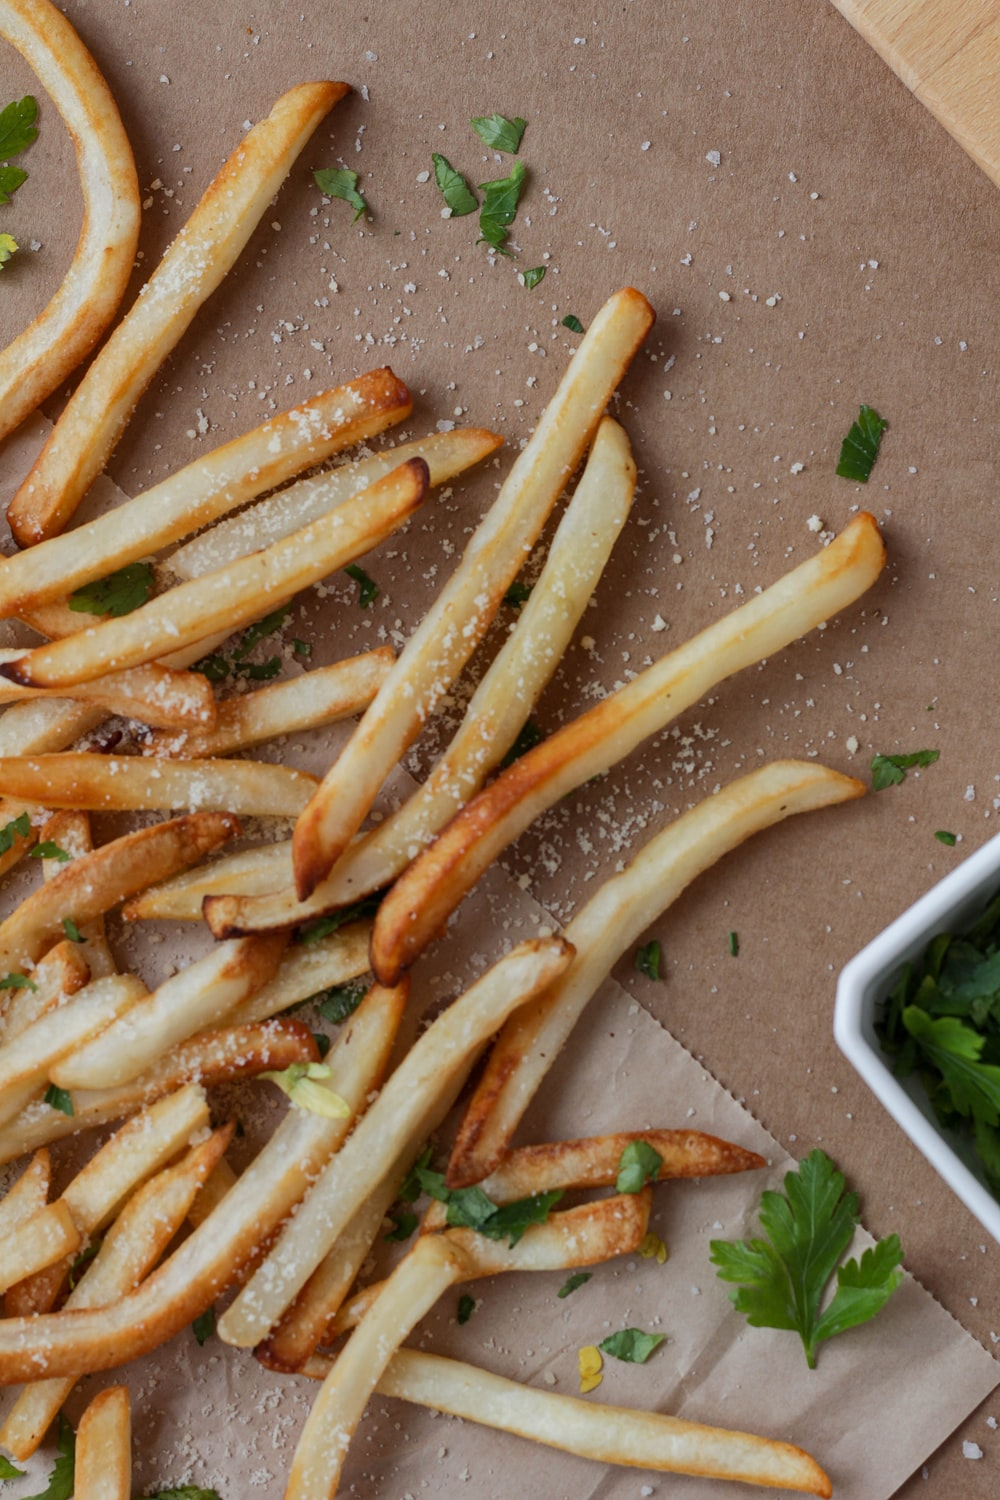 fried fries on gray tray